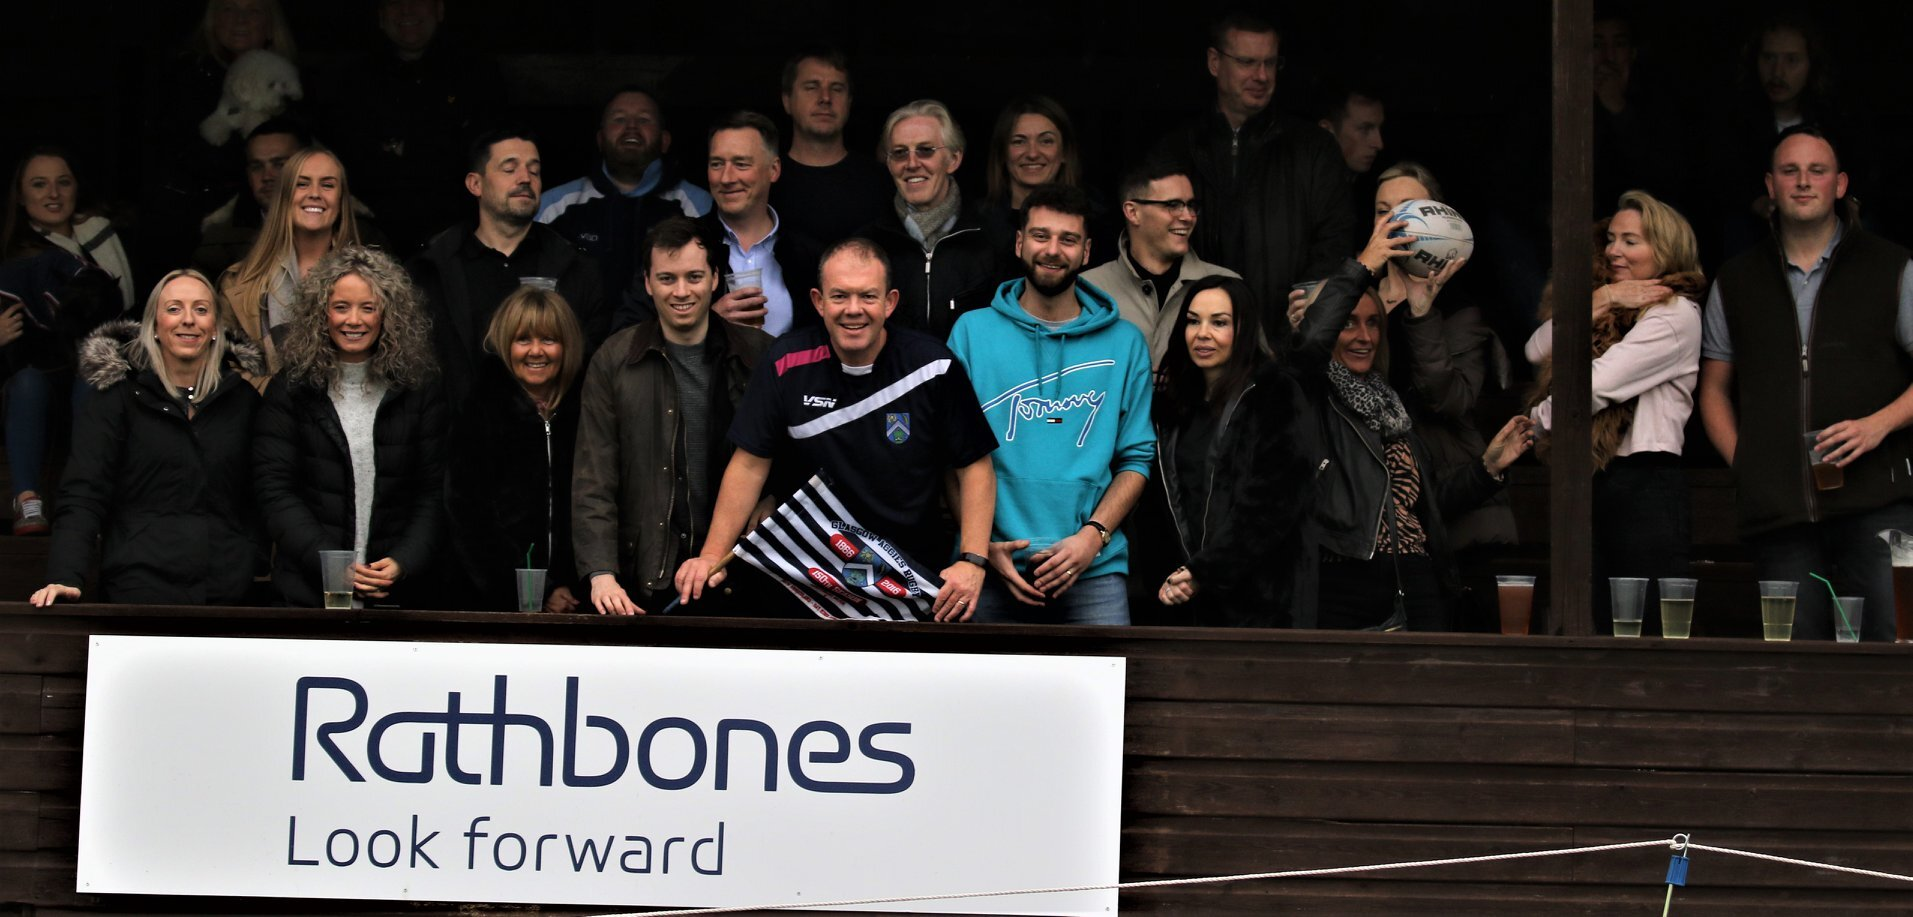 A sponsors day - enjoyed by all